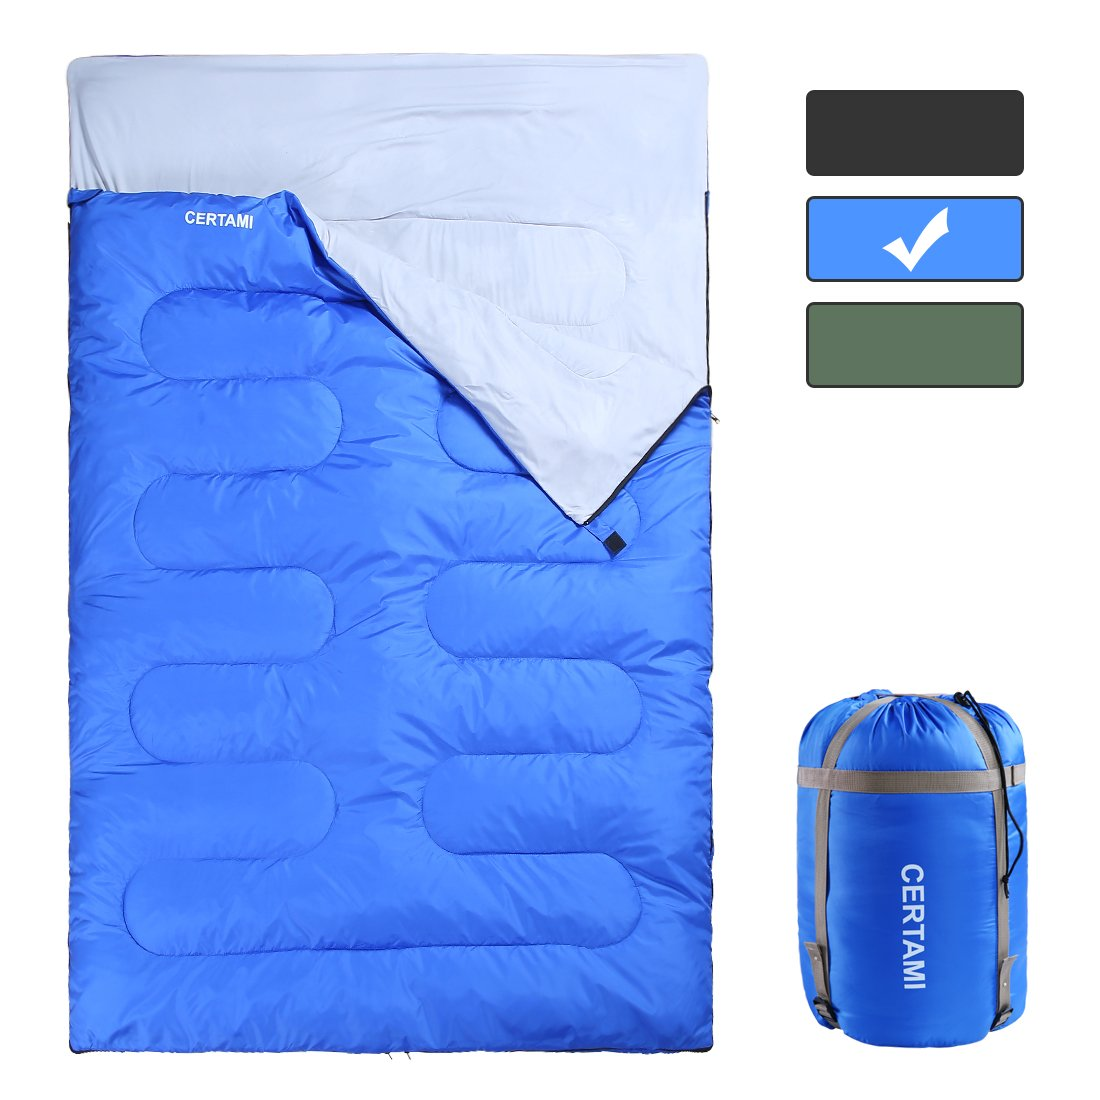 CER TAMI Sleeping Bag for Adults, Girls & Boys, Lightweight Waterproof Compact, Great for 4 Season Warm & Cold Weather, Perfect for Outdoor Backpacking, Camping, Hiking (Dark Blue/Double Zip) by CER TAMI